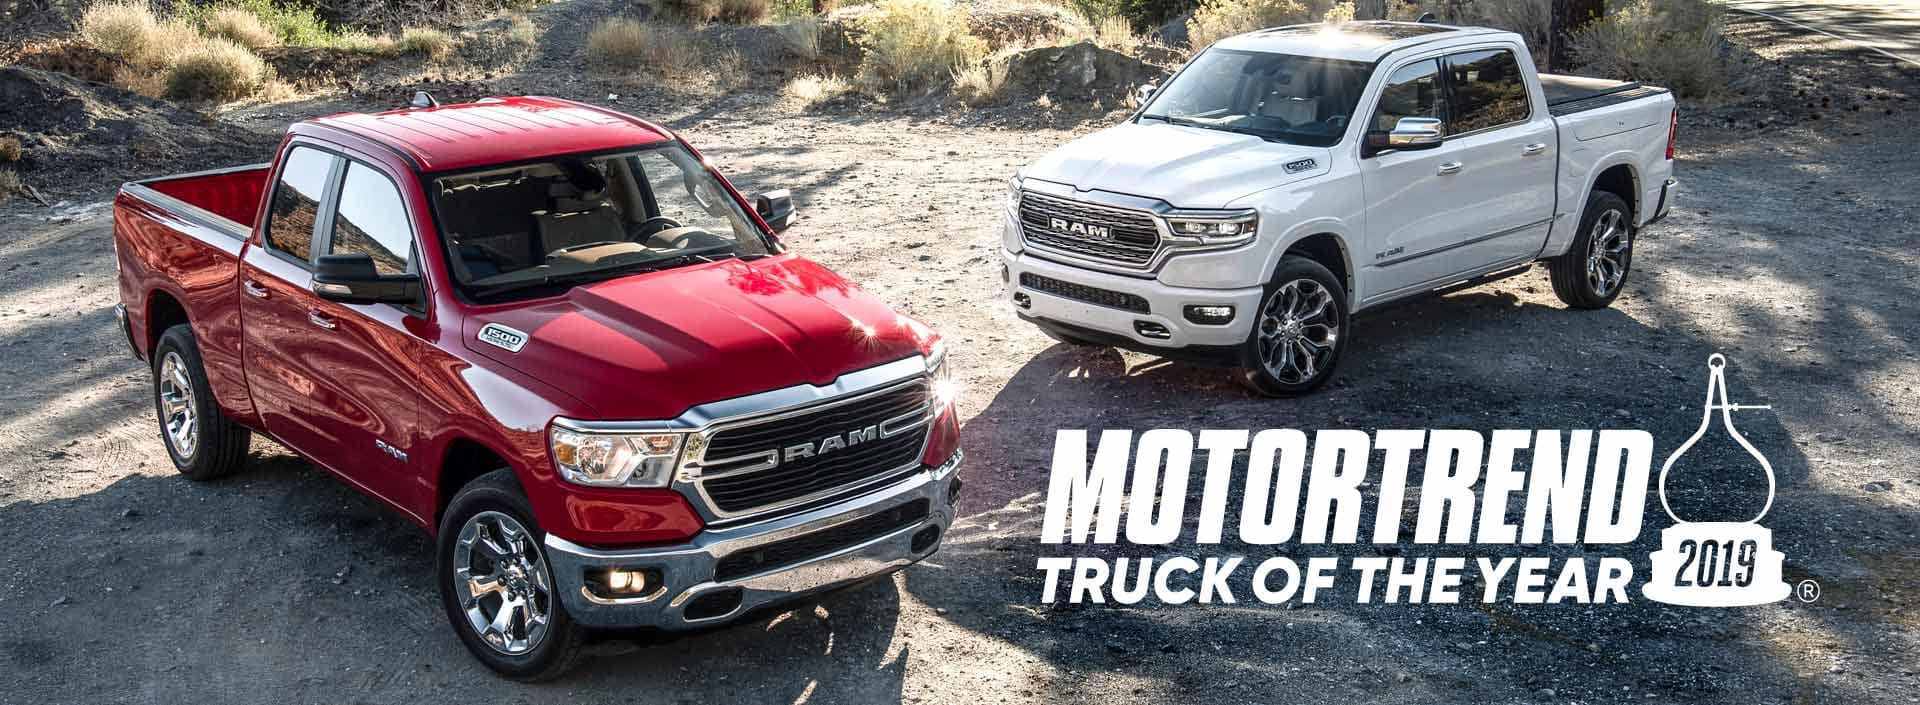 MotorTrend Truck of The Year 2019